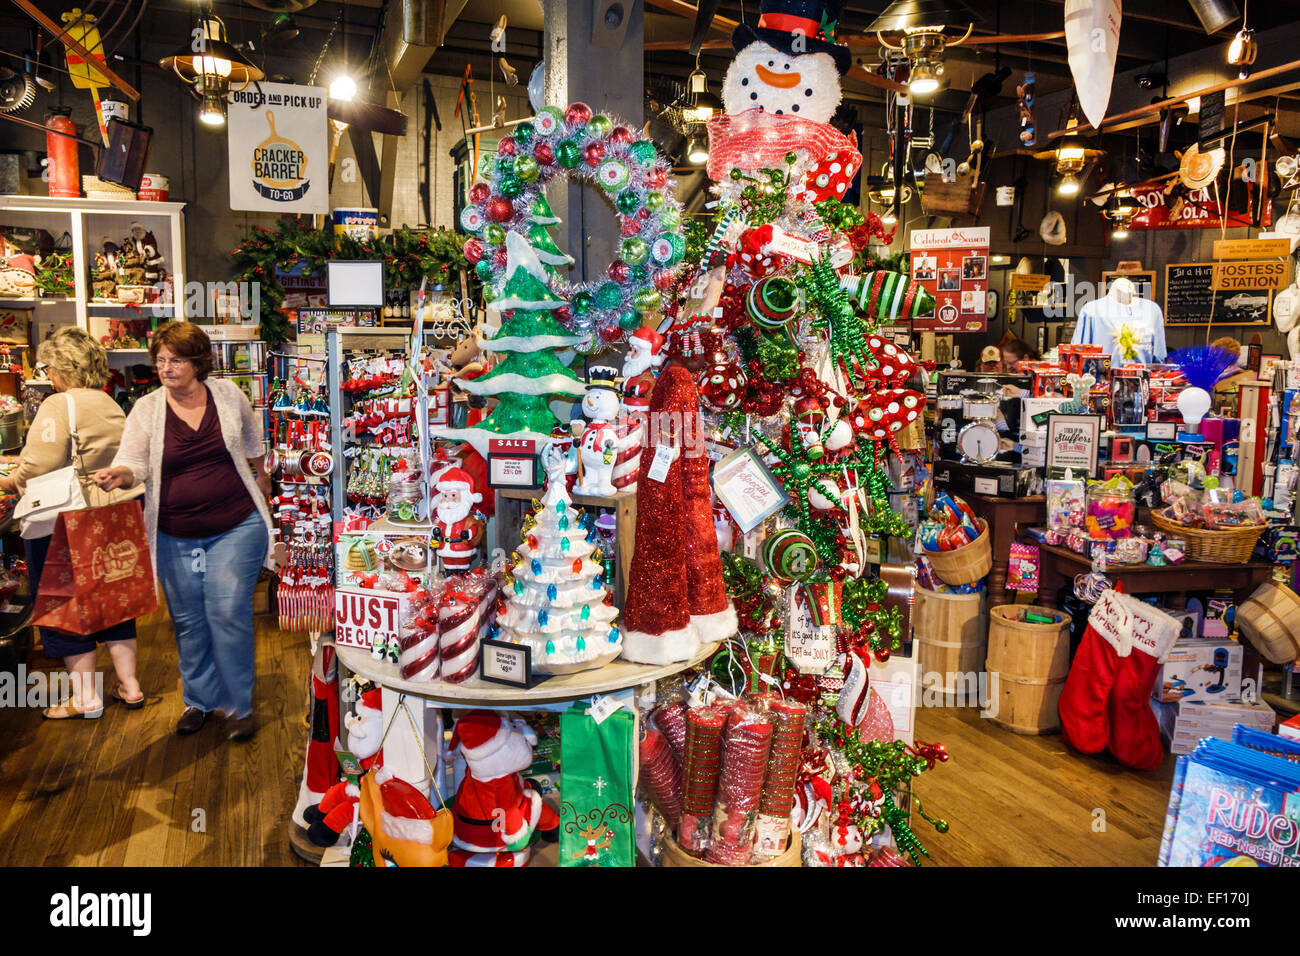 vero beach florida cracker barrel country store shopping christmas display sale decorations